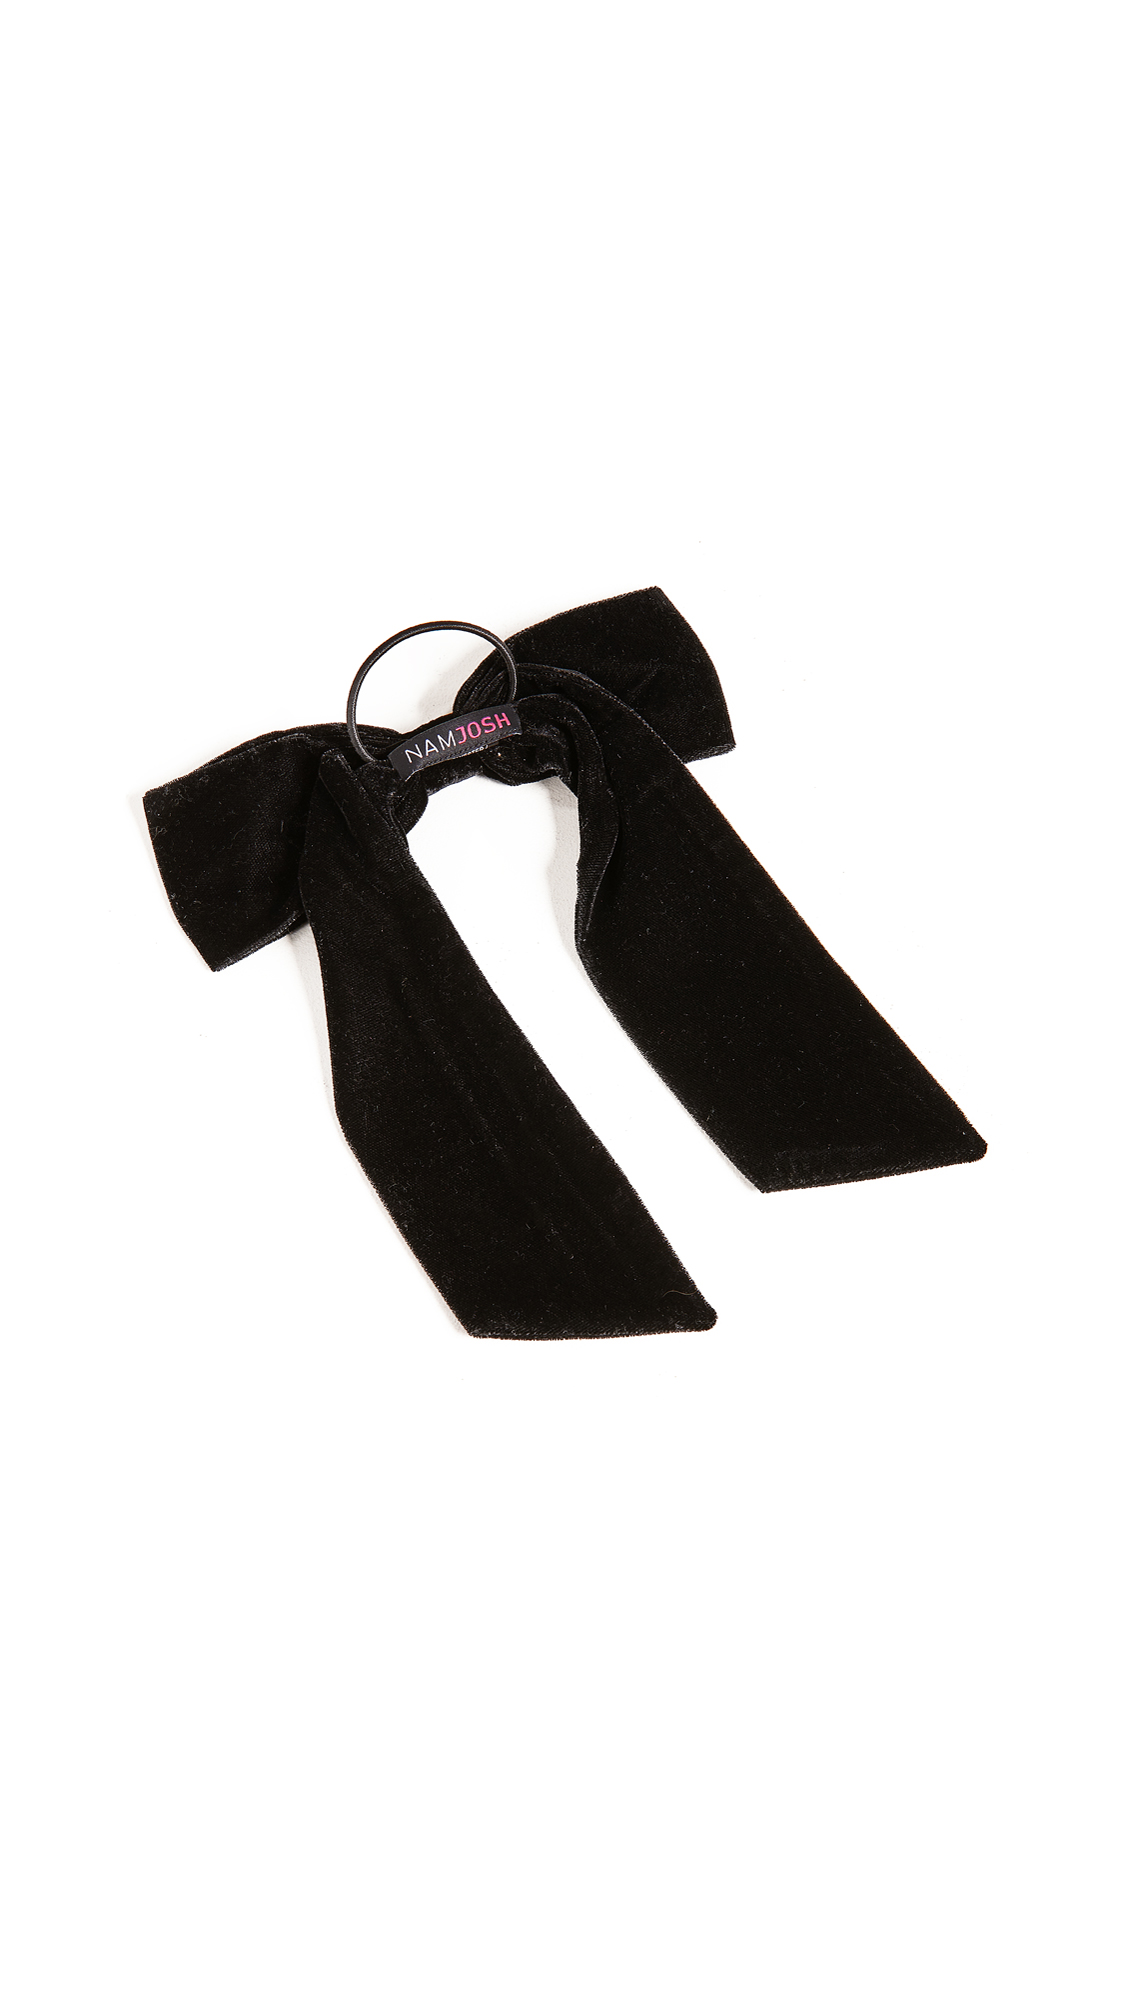 NAMJOSH Velvet Bow Pony Holder in Black